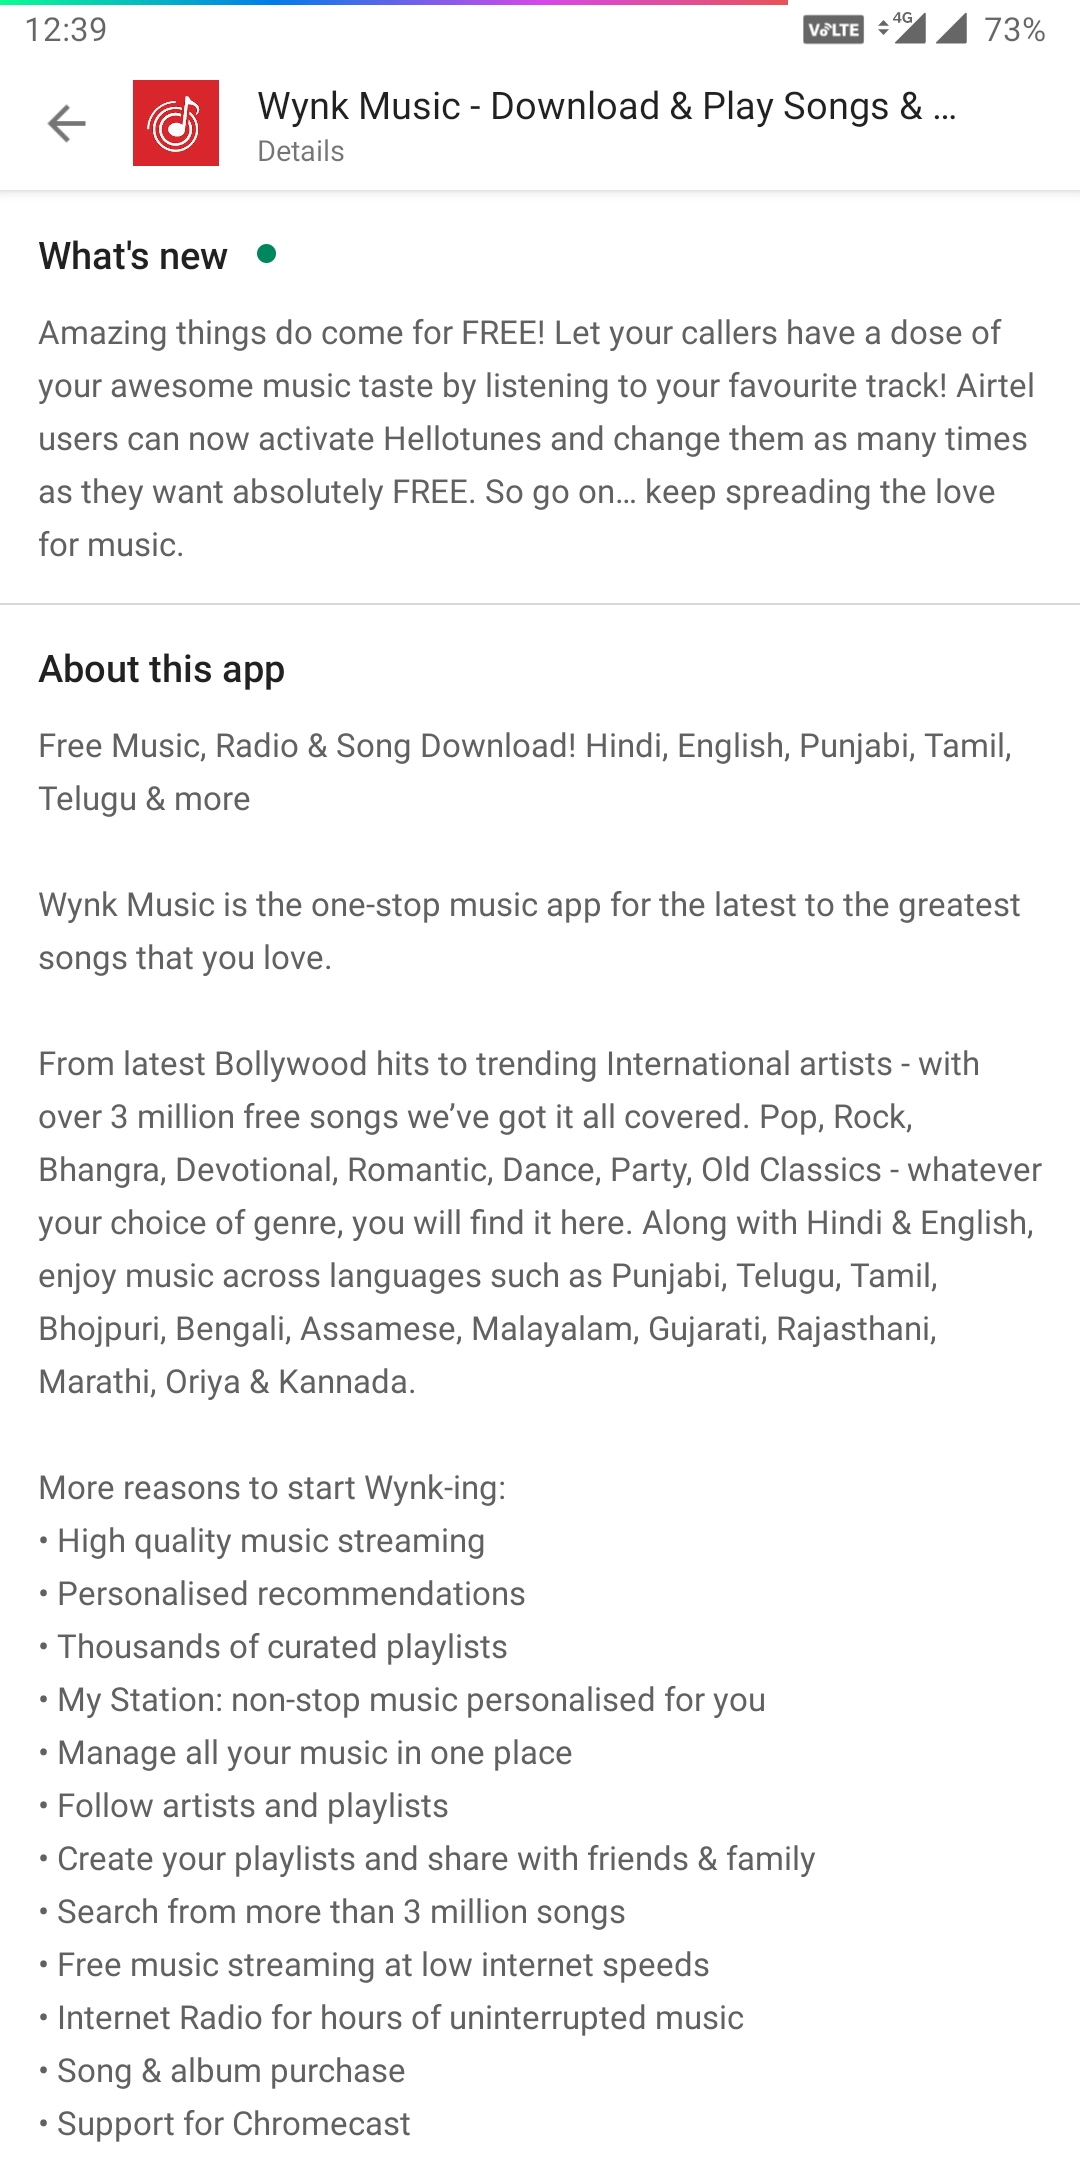 Airtel Free Hellotunes Offer - Airtel Users Now Set Free Hellotunes